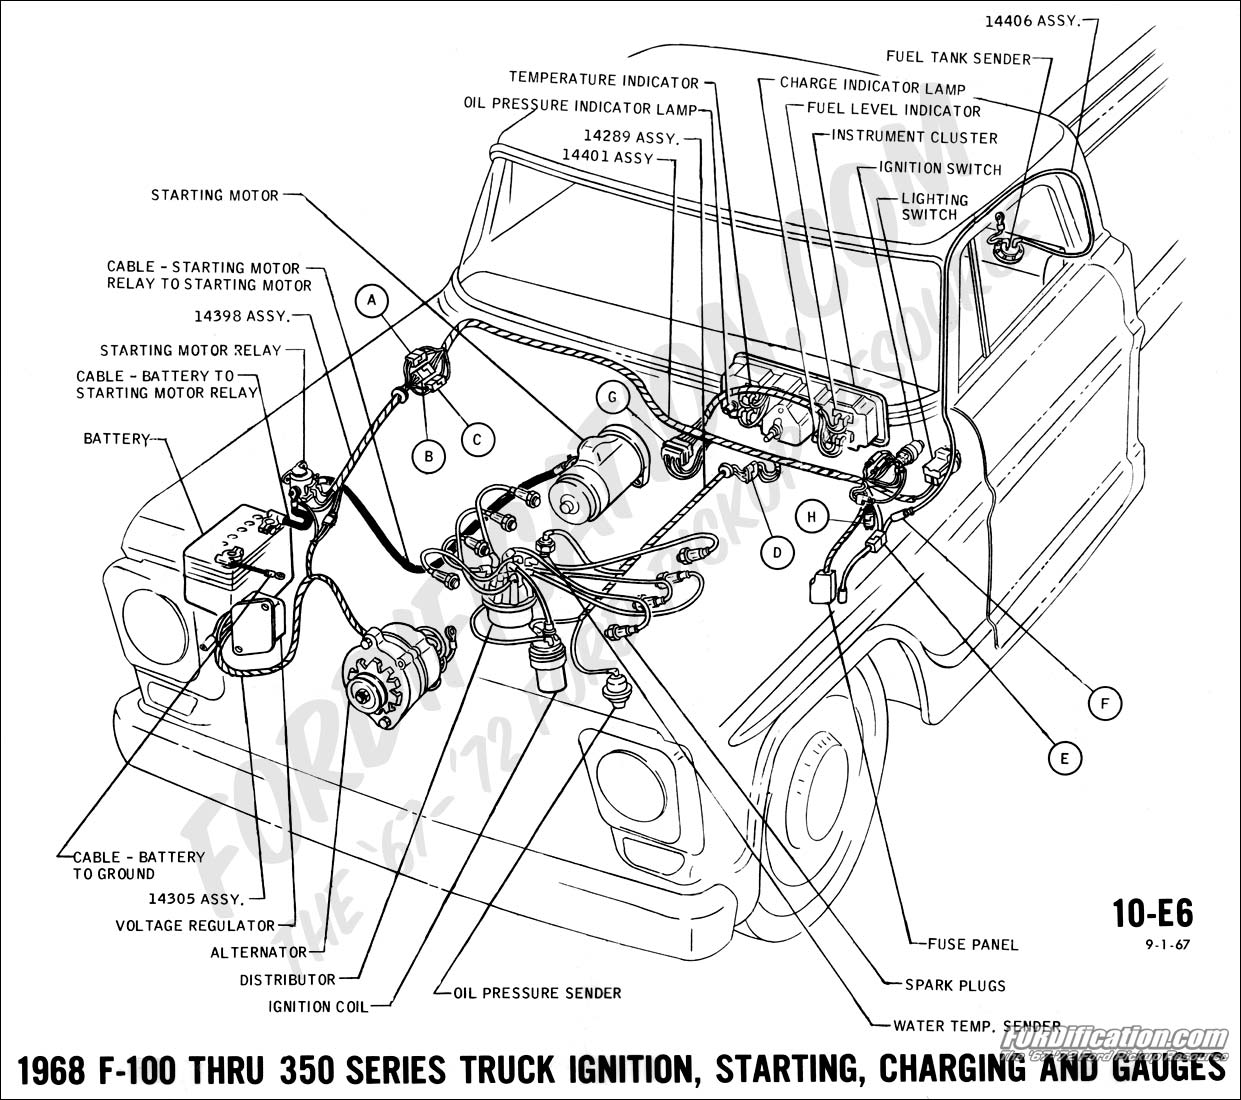 Ford Alternator Plug Wiring Diagram | Wiring Liry on computer schematics, ignition schematics, generator schematics, plumbing schematics, wire schematics, circuit schematics, ford diagrams schematics, ecu schematics, transmission schematics, piping schematics, engineering schematics, electronics schematics, transformer schematics, motor schematics, ductwork schematics, electrical schematics, tube amp schematics, amplifier schematics, engine schematics, design schematics,